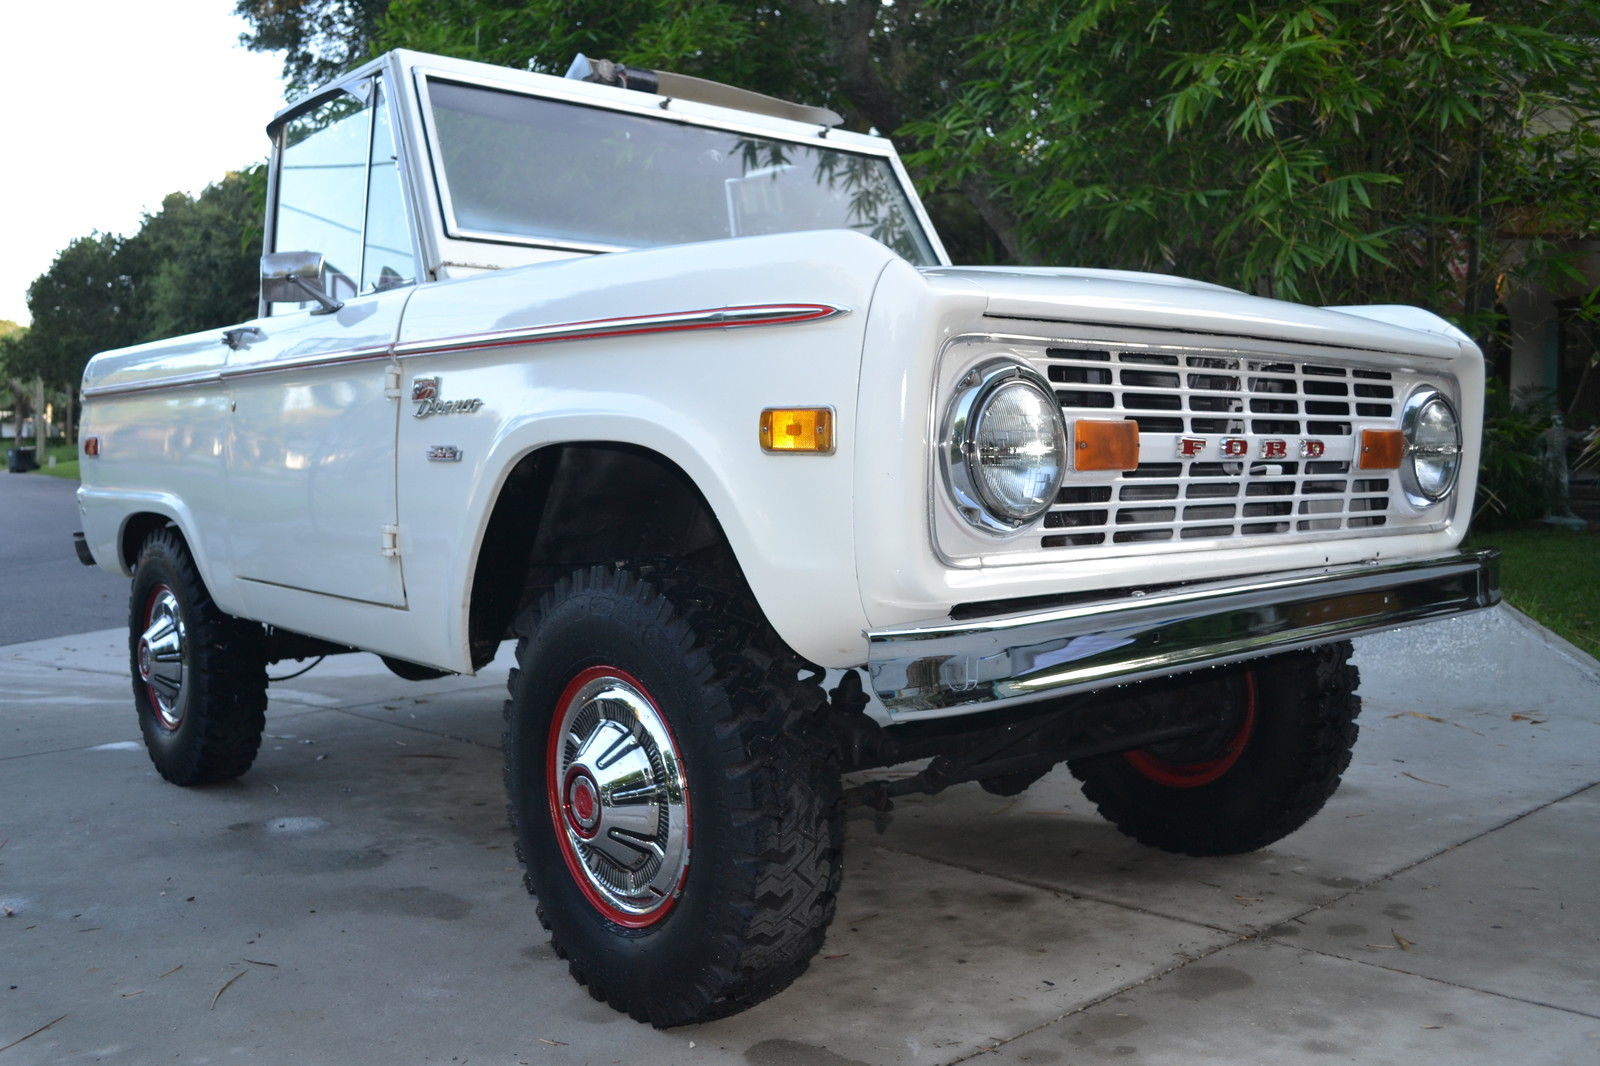 1975 ford bronco ranger 2 door compact suv